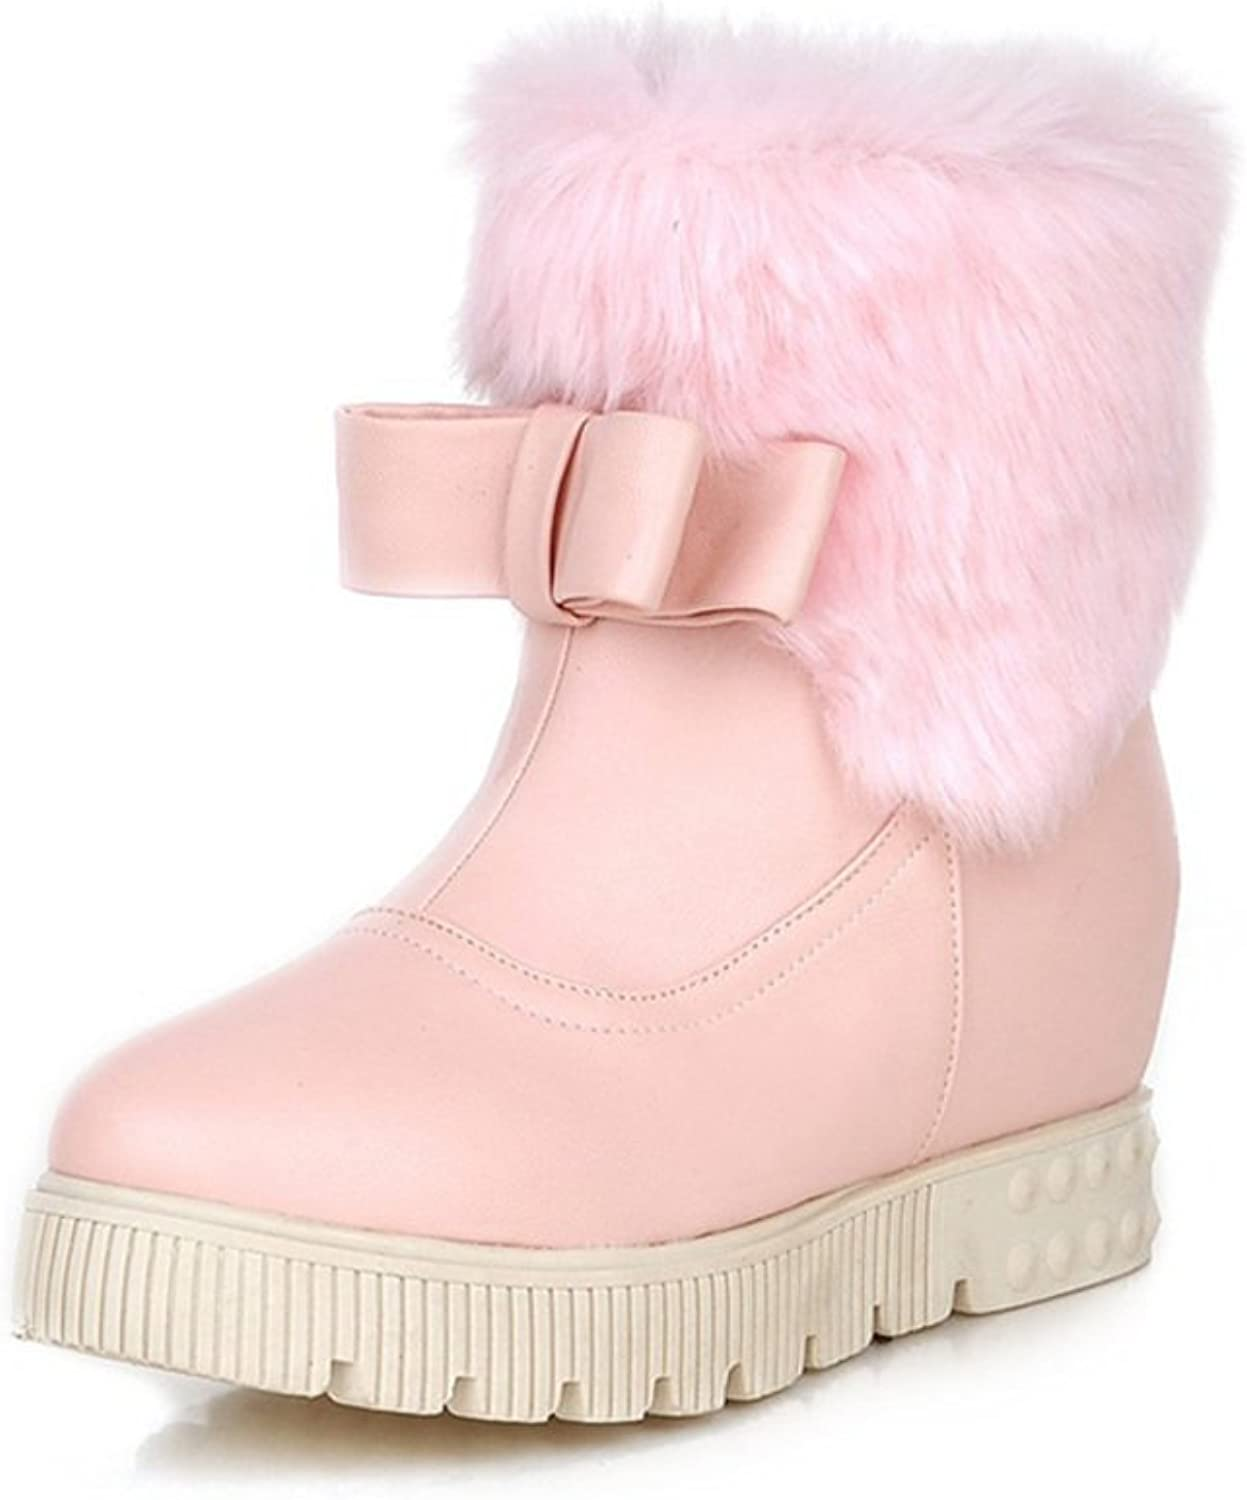 RHFDVGDS Cute girls bow high snow boots waterproof nubuck leather high heel women's boots short tube College shoes student padded winter shoes